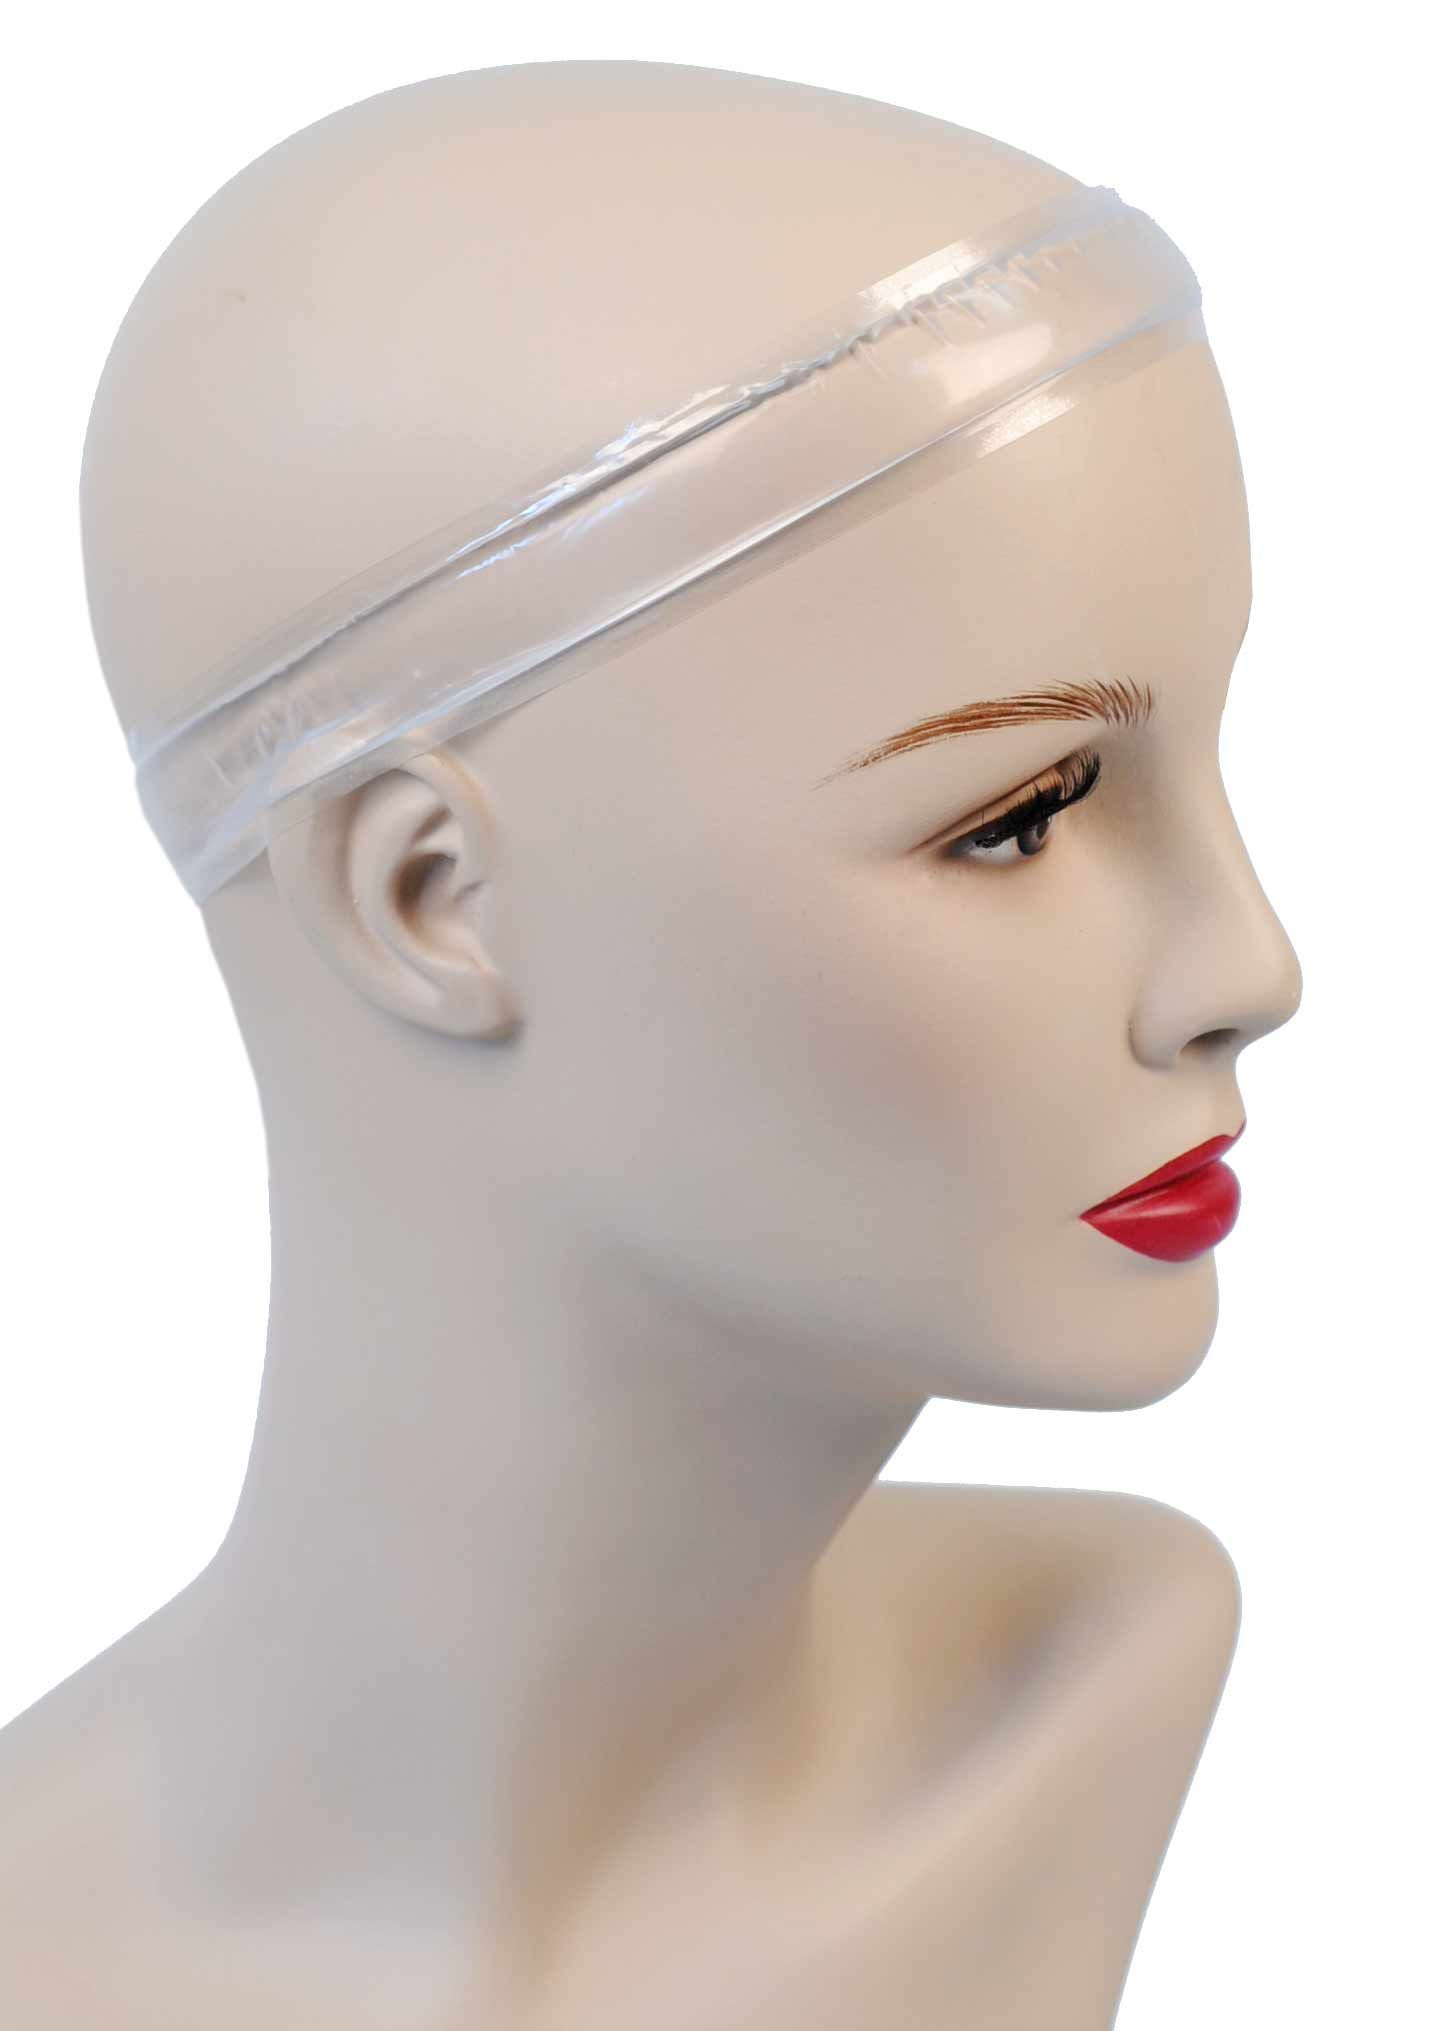 Cushion Band Grips Wigs Comfortably In Place Comfy